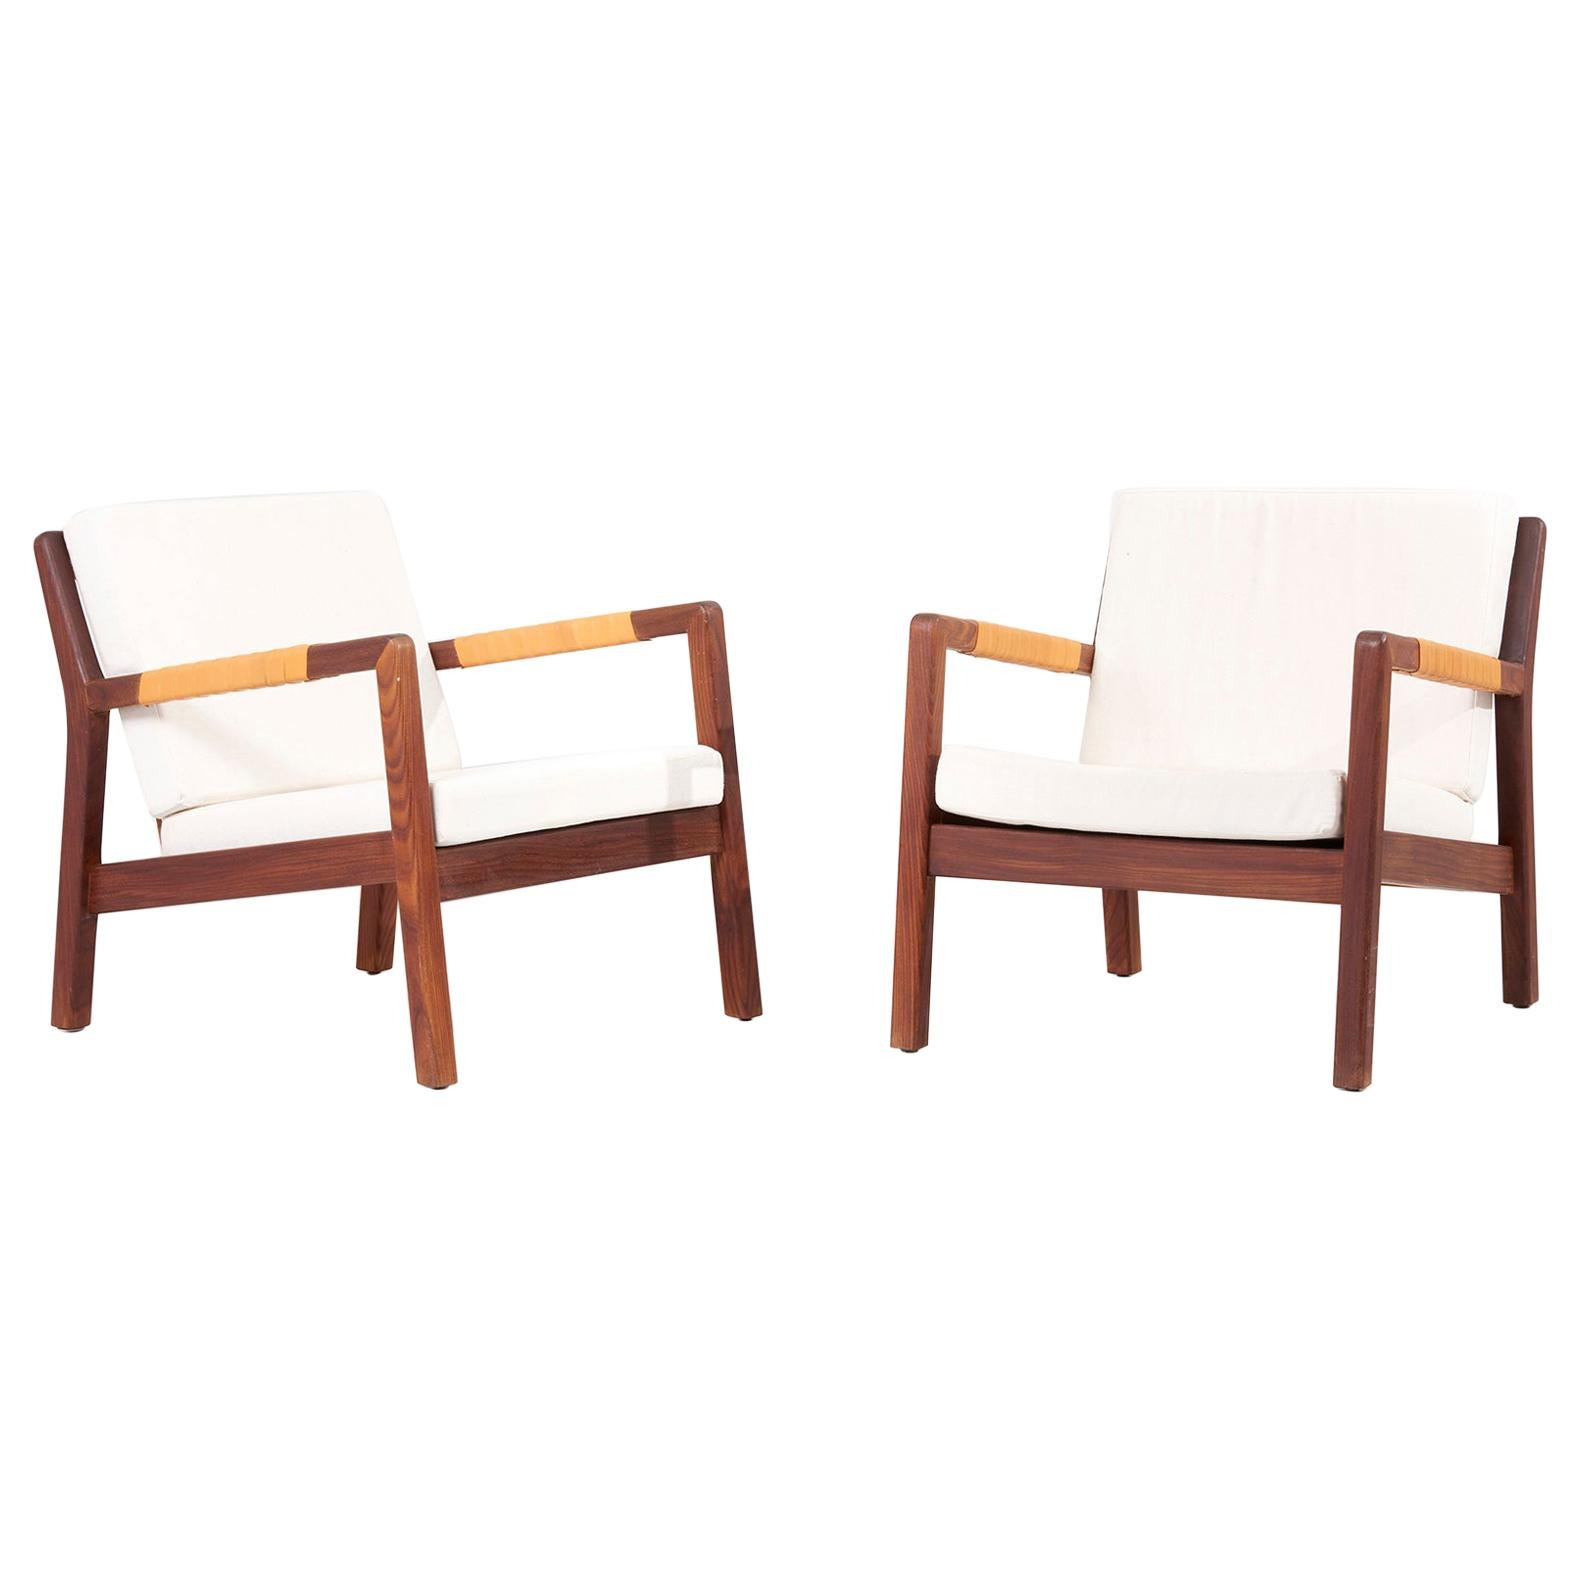 Pair of Lounge Chairs by Carl Gustav Hiort af Ornäs, 1950s